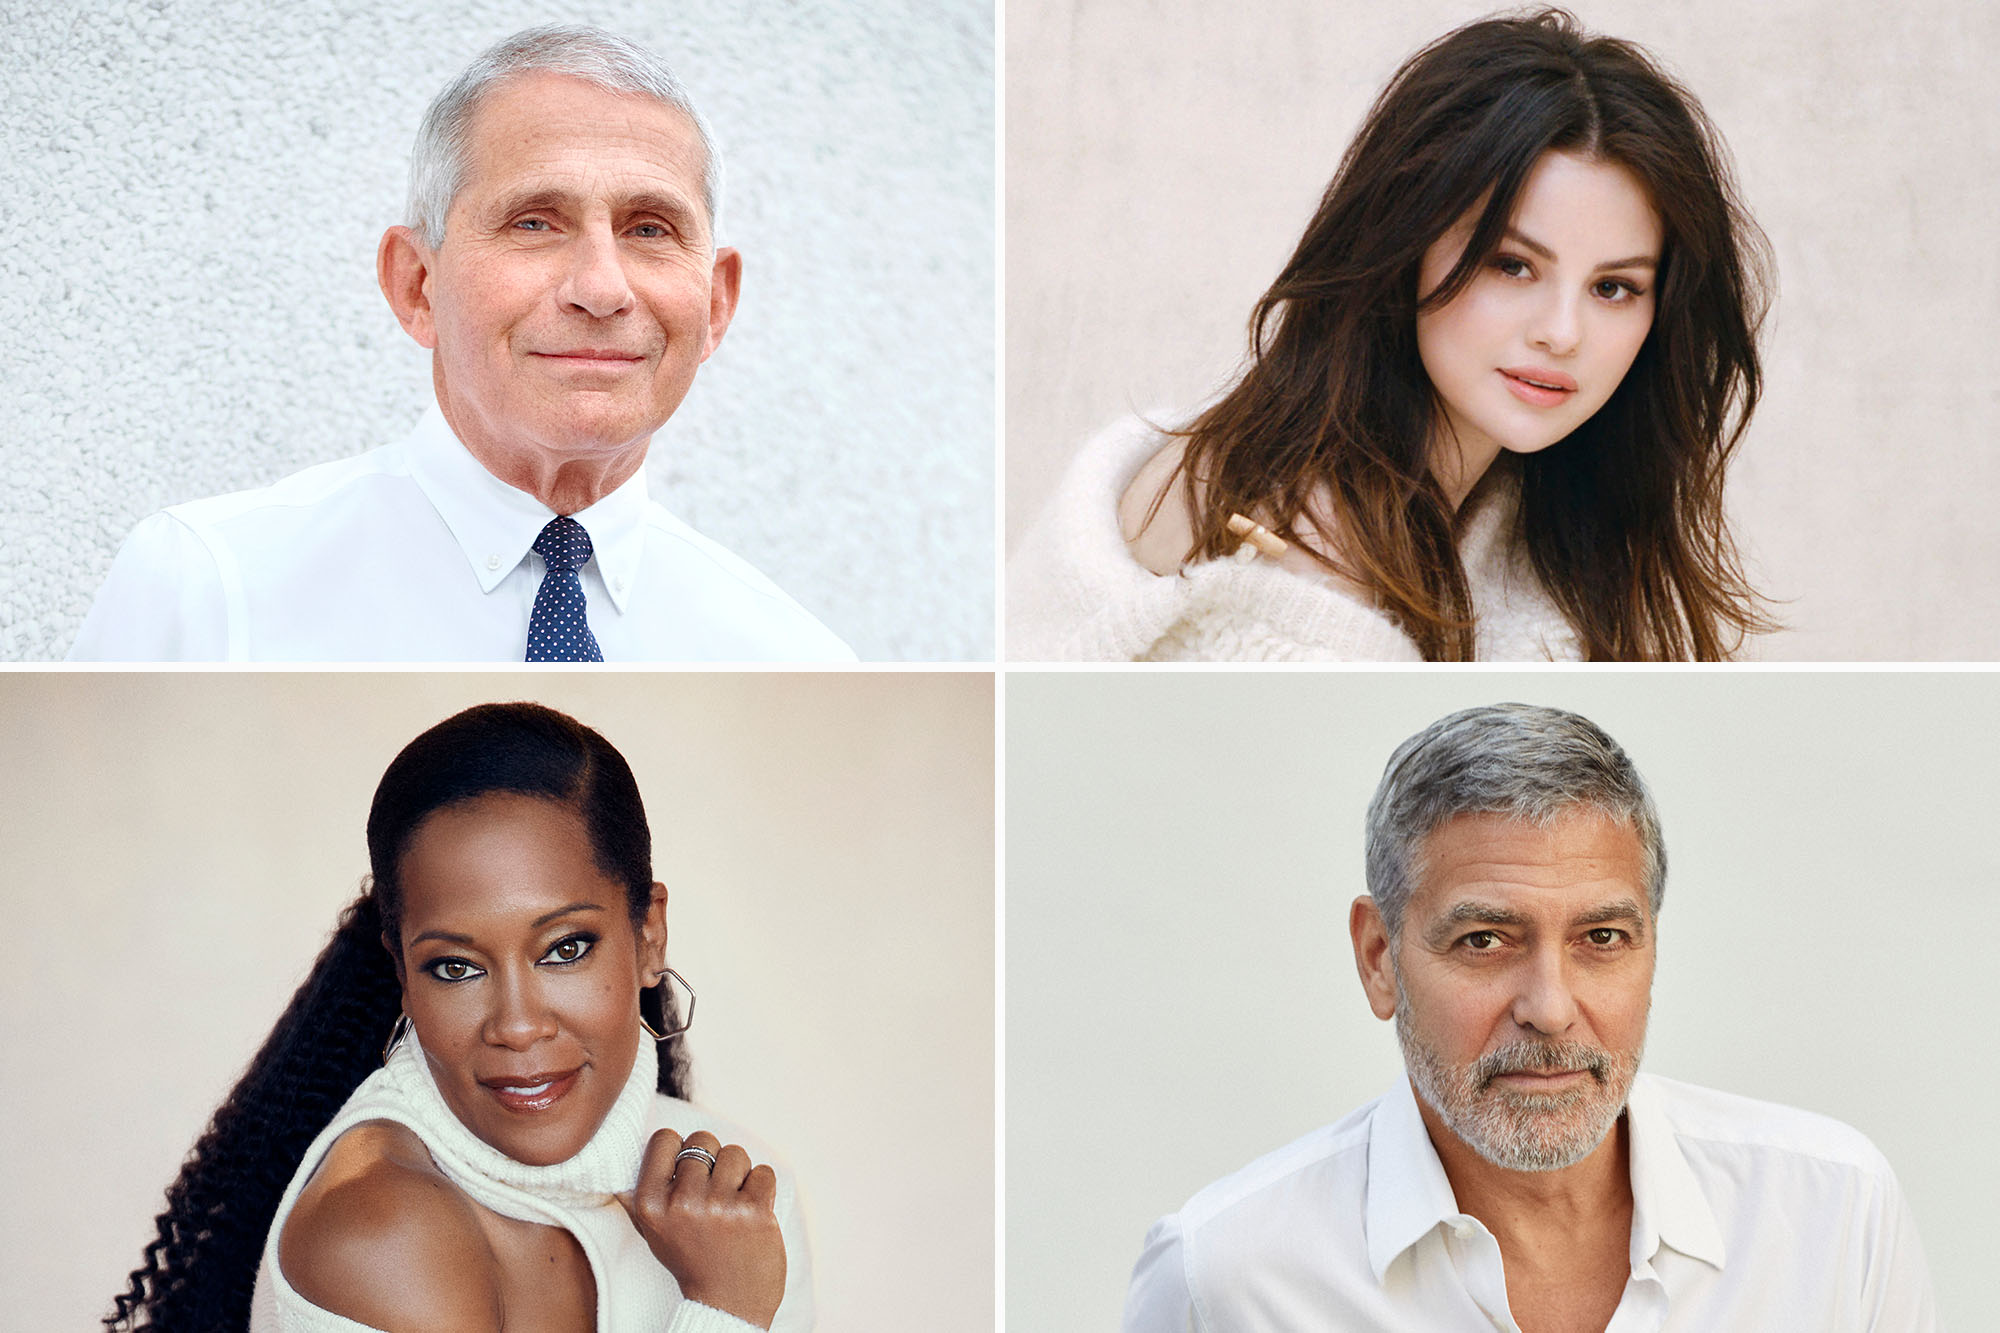 From top left, clockwise: Dr. Anthony Fauci, Selena Gomez, Regina King and George Clooney